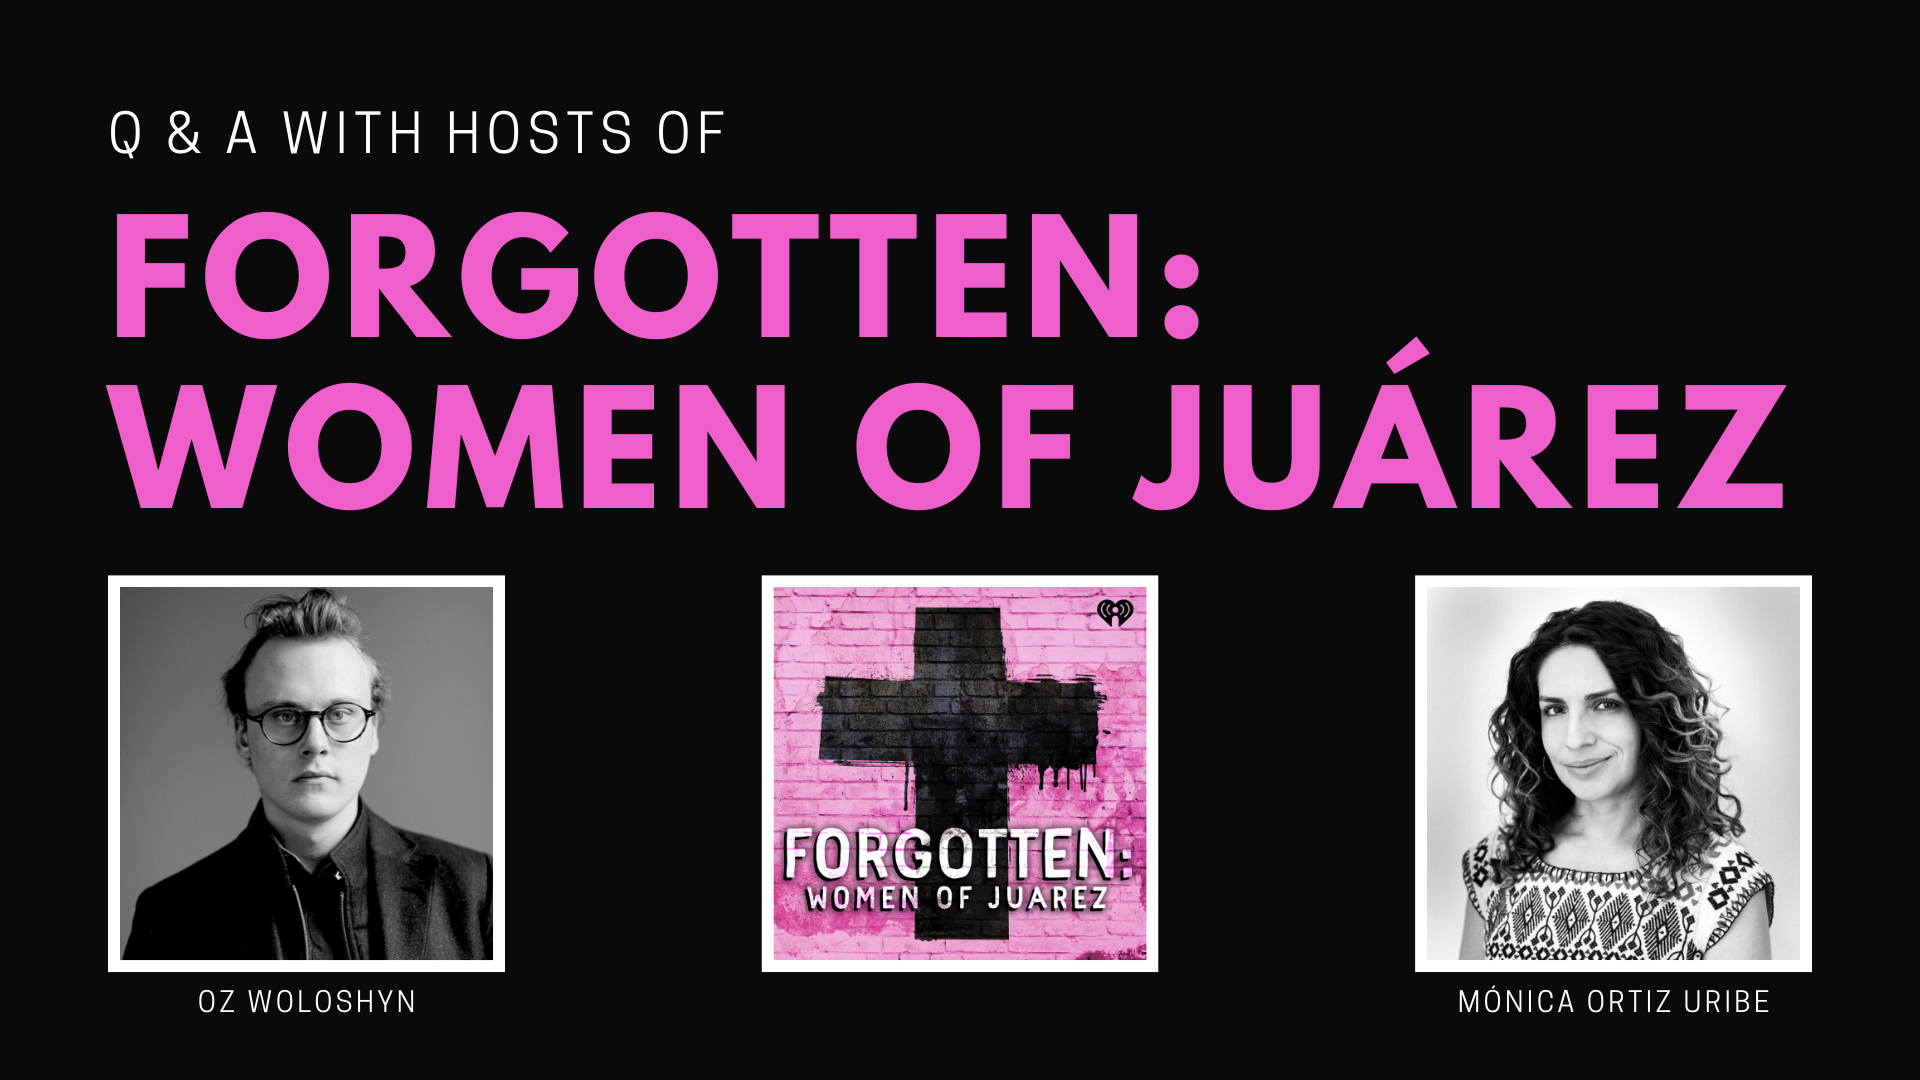 Q&A with the hosts of Forgotten: Women of Juárez, Oz Woloshyn & Mónica Ortiz Uribe